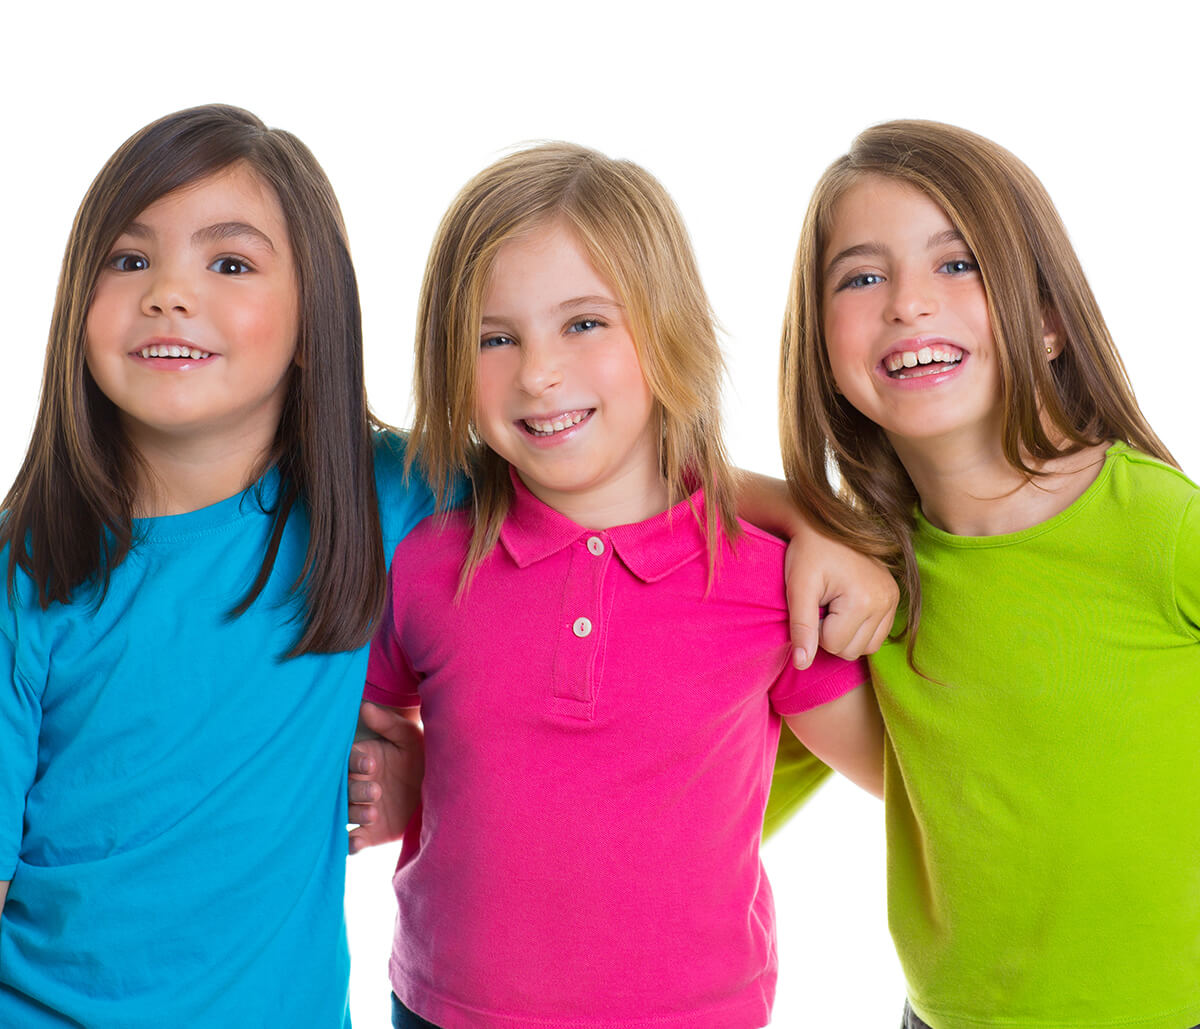 Virtue Dental Care Yadkinville NC, The Benefits of Visiting a Biological Pediatric Dentist in Yadkinville, NC